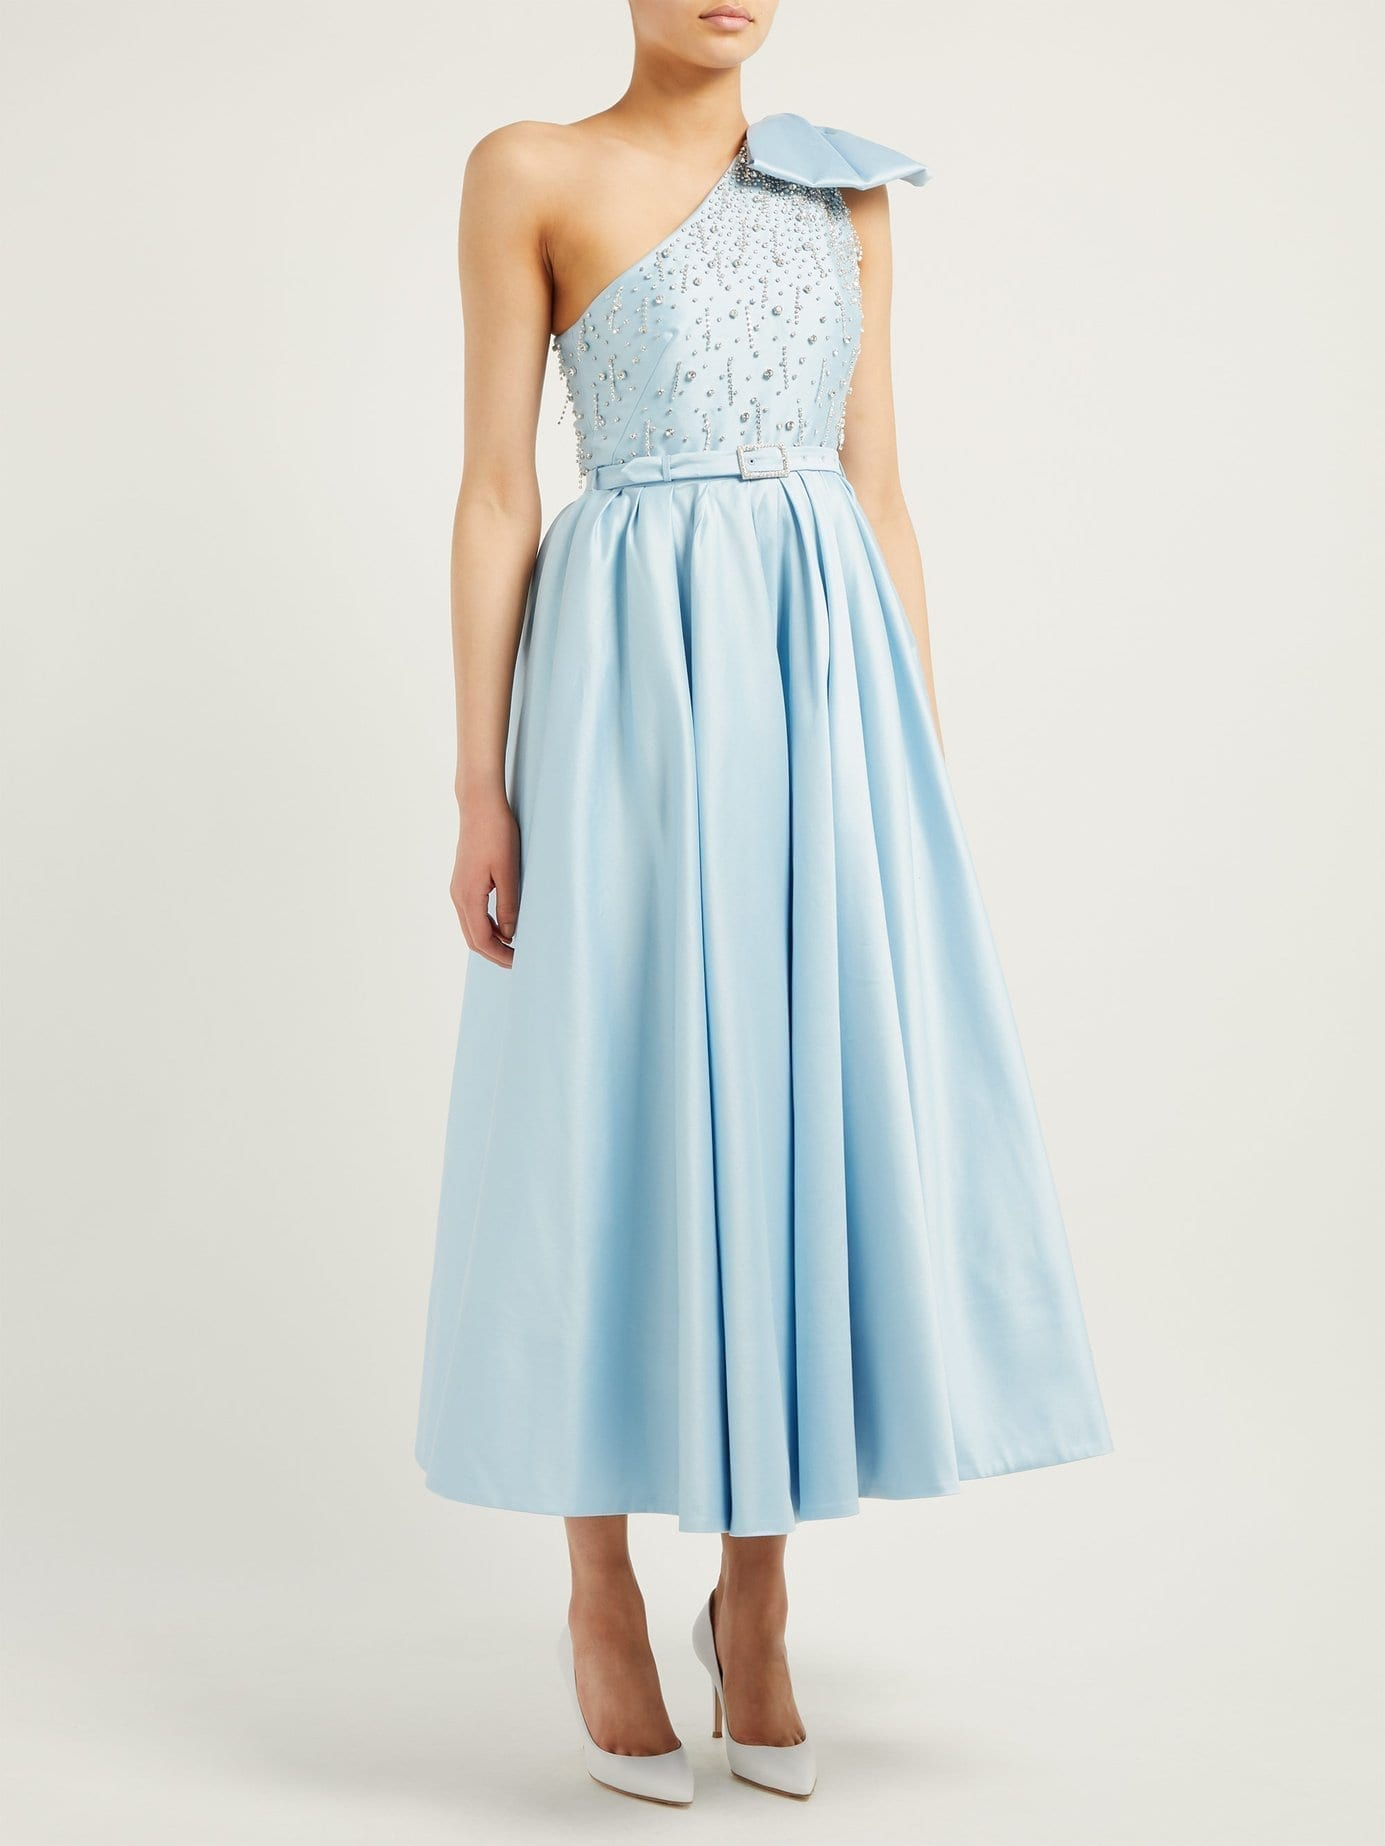 ALESSANDRA RICH Crystal-bodice One-shoulder Cotton-blend Light Blue Gown